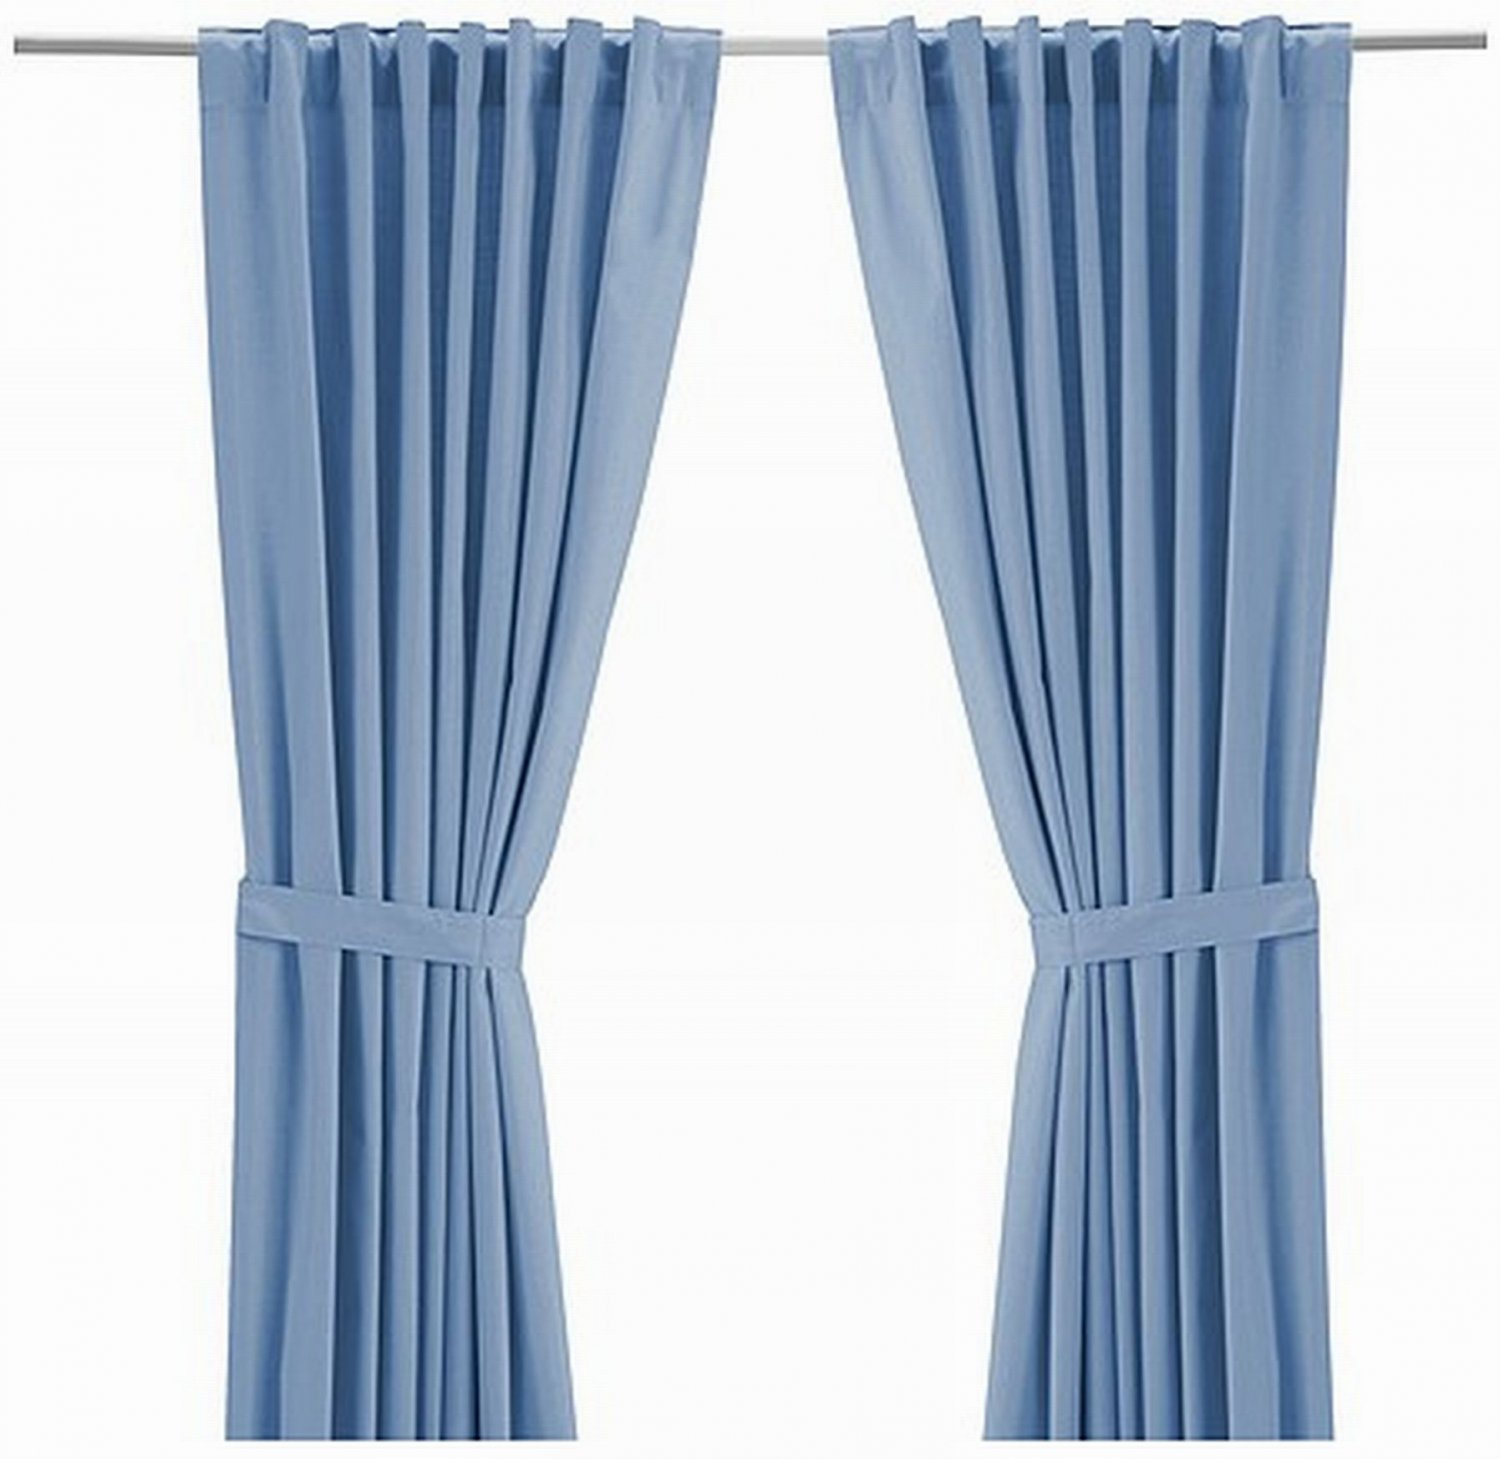 ikea ritva light blue curtains drapes heavy cotton 98. Black Bedroom Furniture Sets. Home Design Ideas